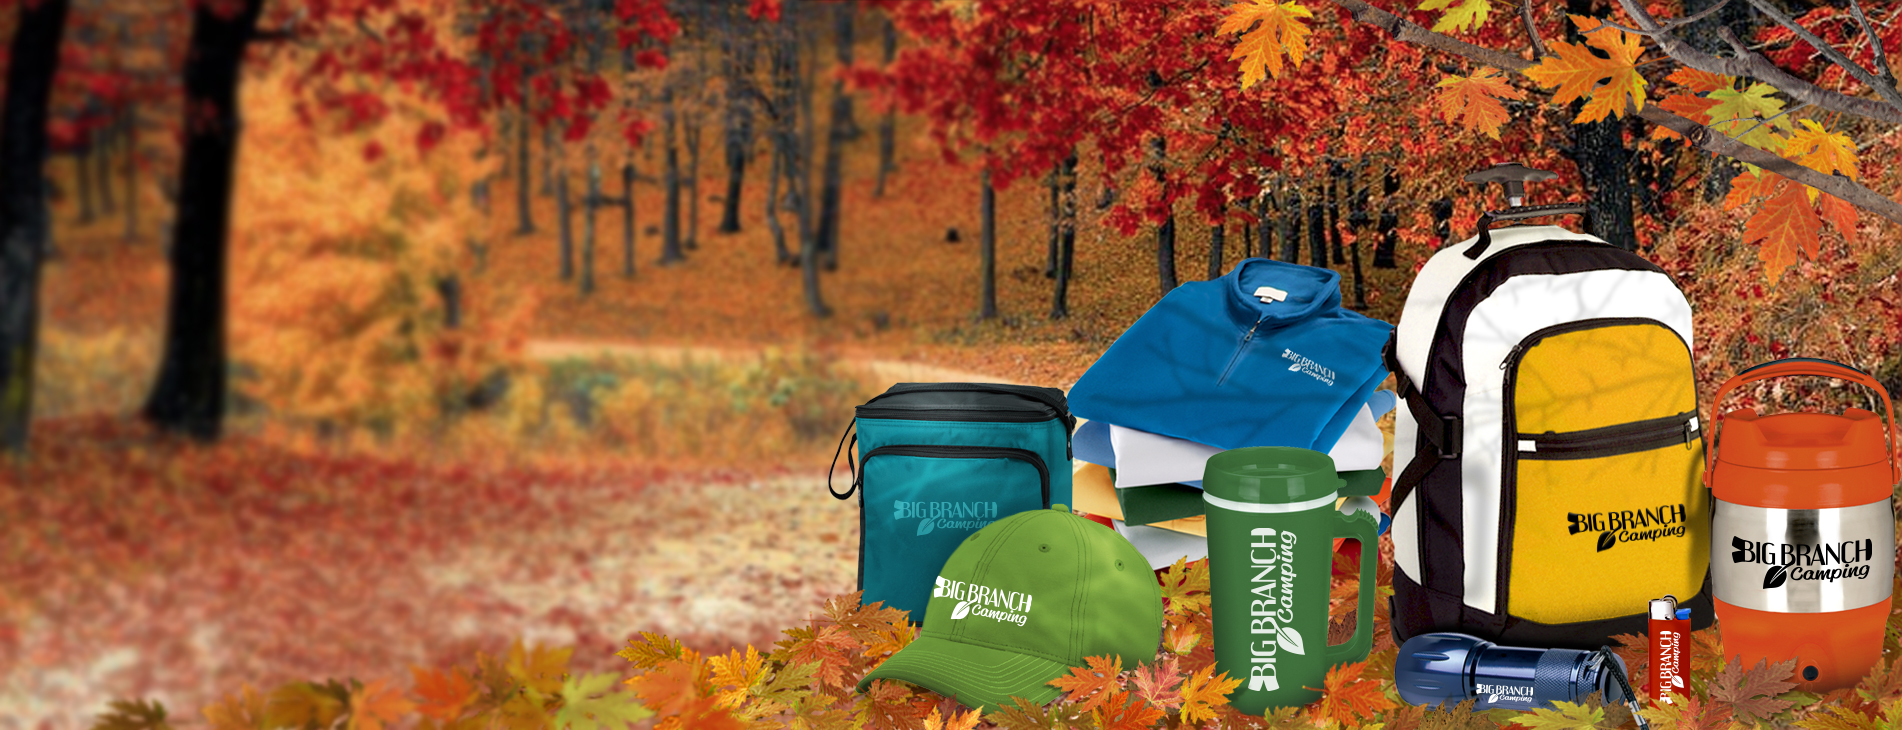 Branded apparel, bags, water bottles, and more!